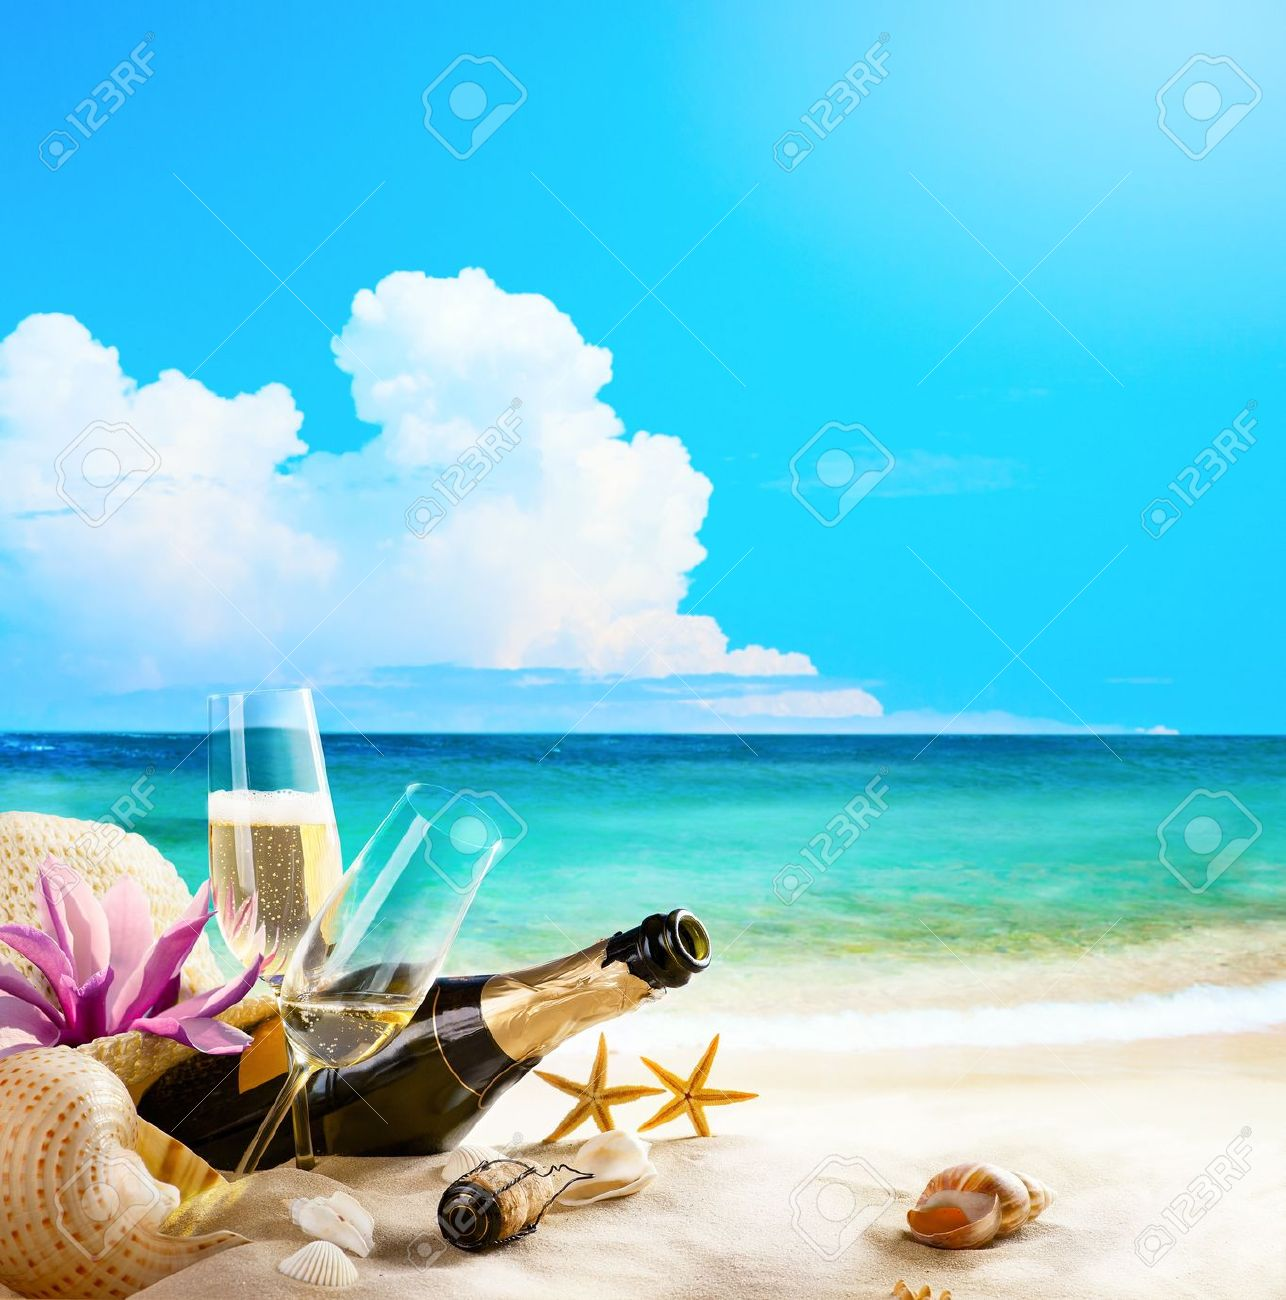 Romantic Beach Stock Photos Royalty Free Romantic Beach Images